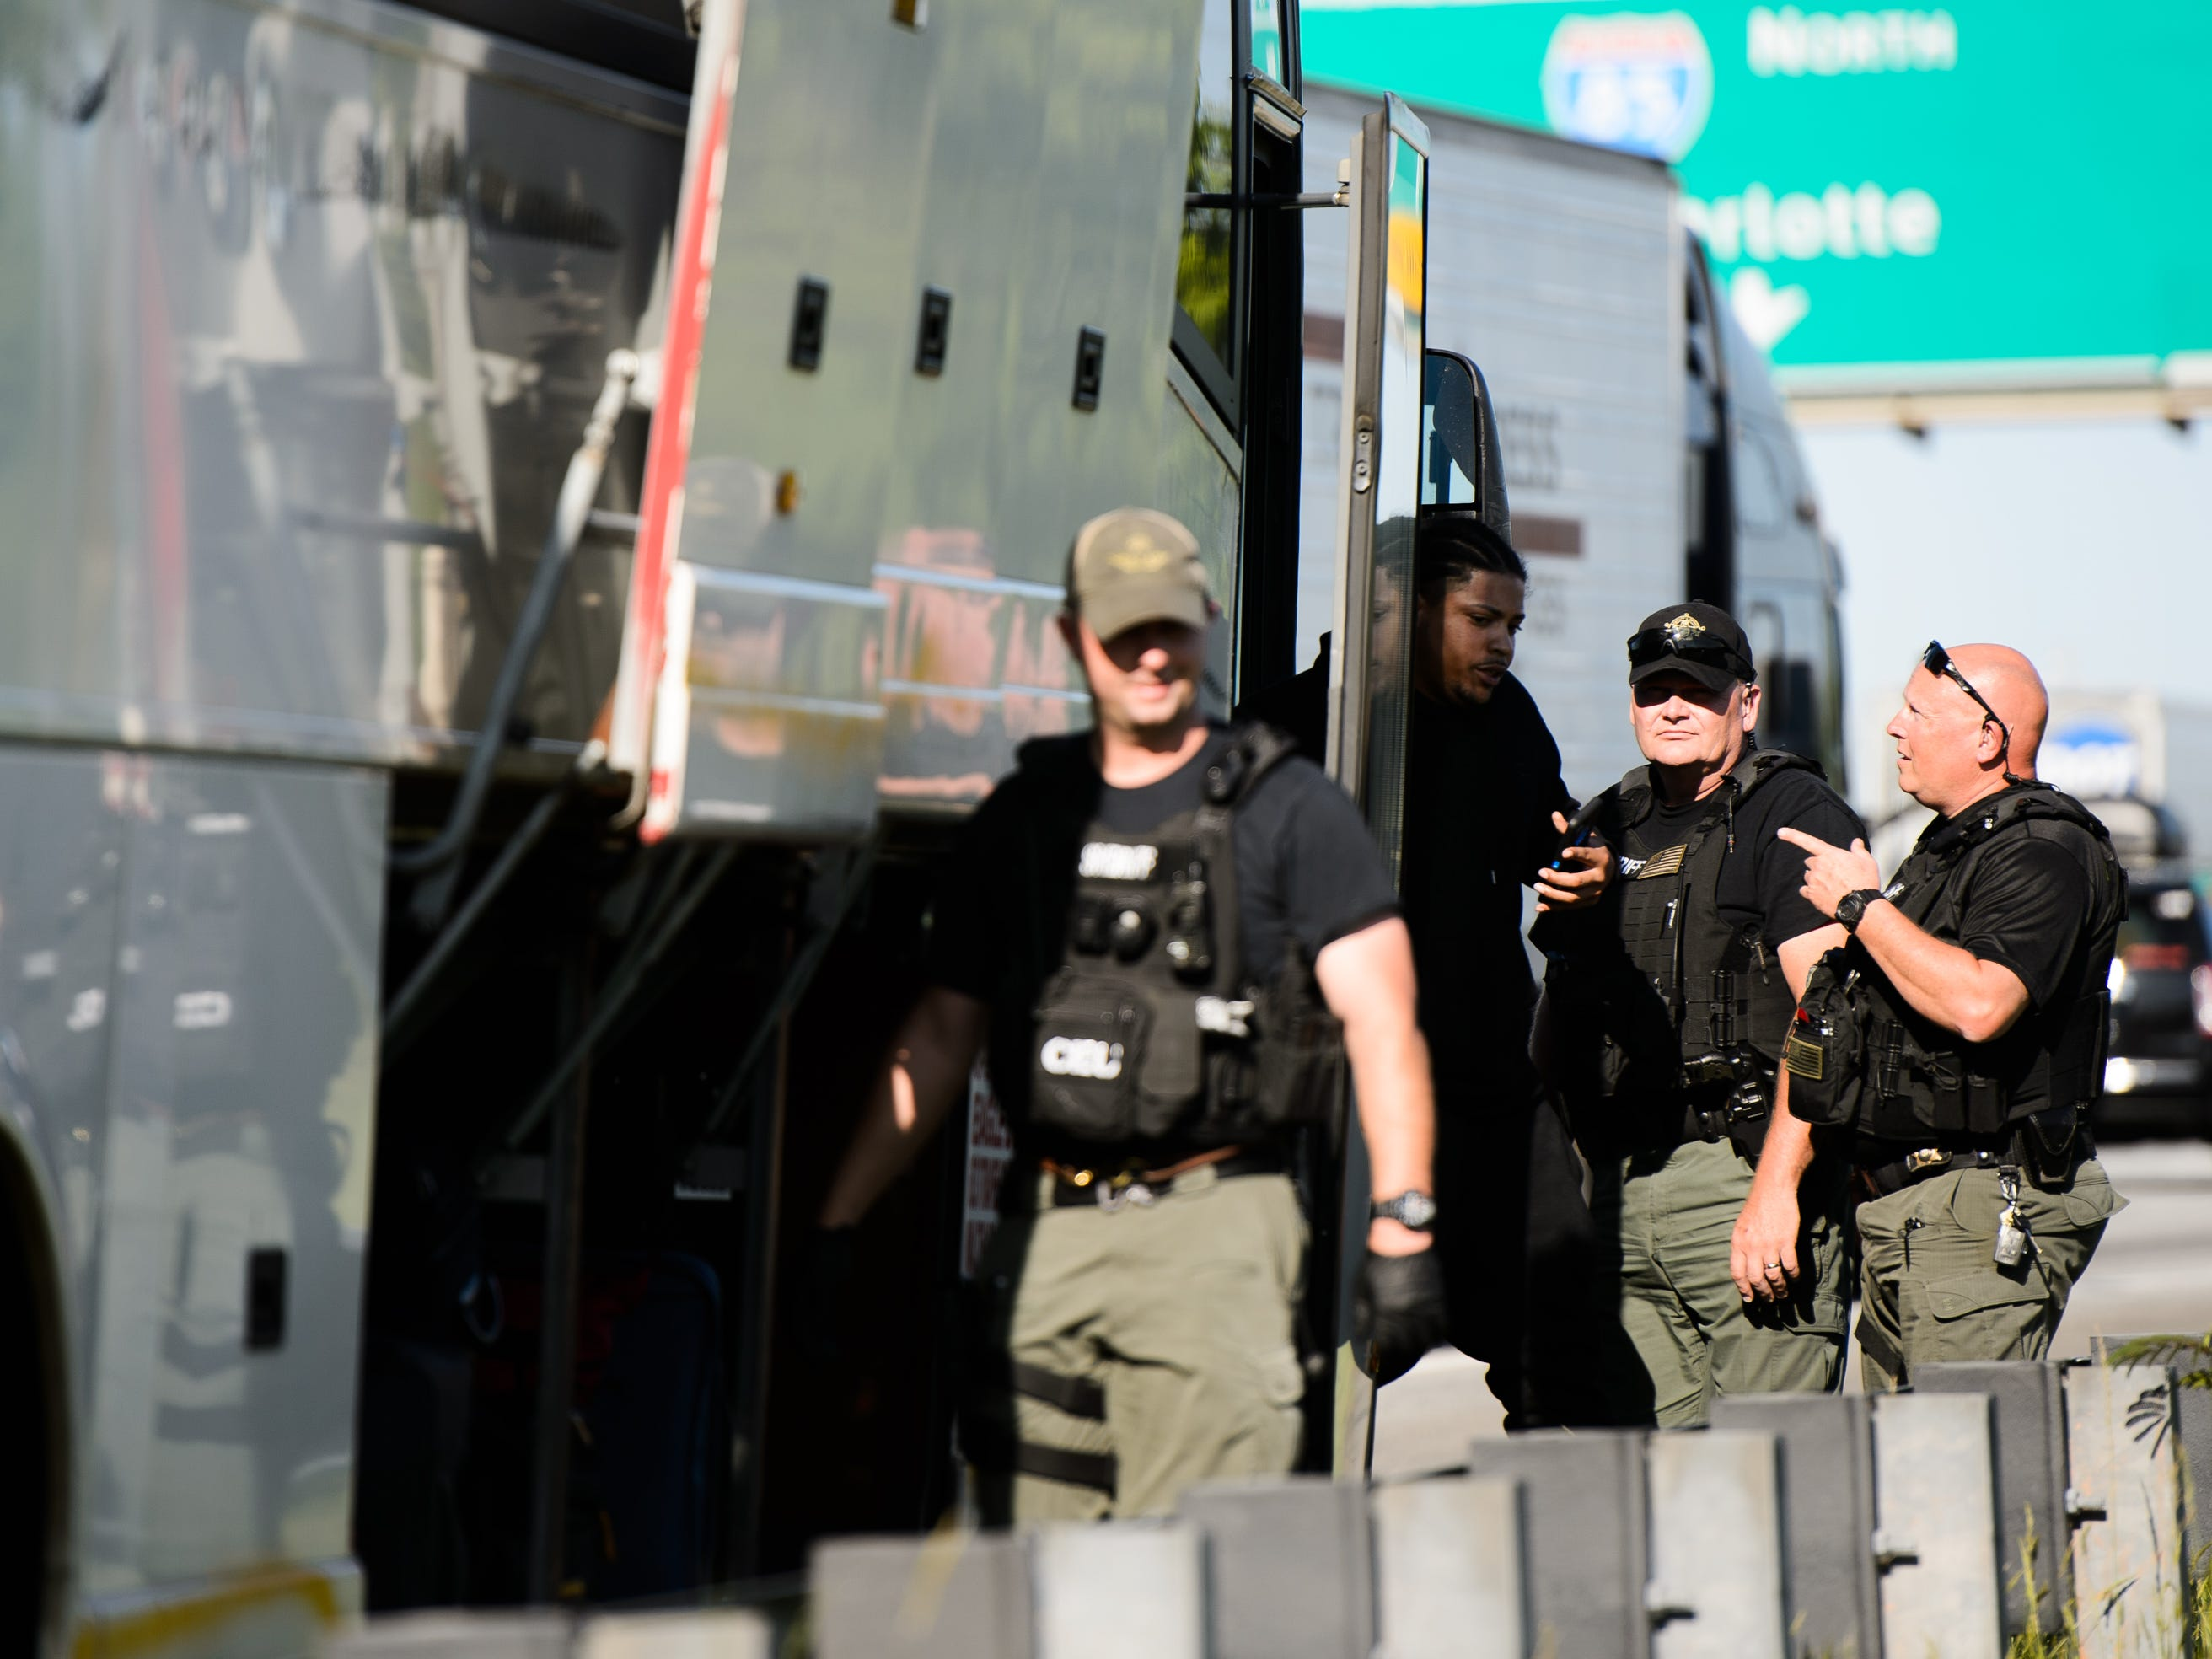 Florence County deputies search a passenger bus on the side of Interstate 85 in Spartanburg County on May 1, 2018. Hundreds of law enforcement agents descend on the county's highways each year during Operation Rolling Thunder.